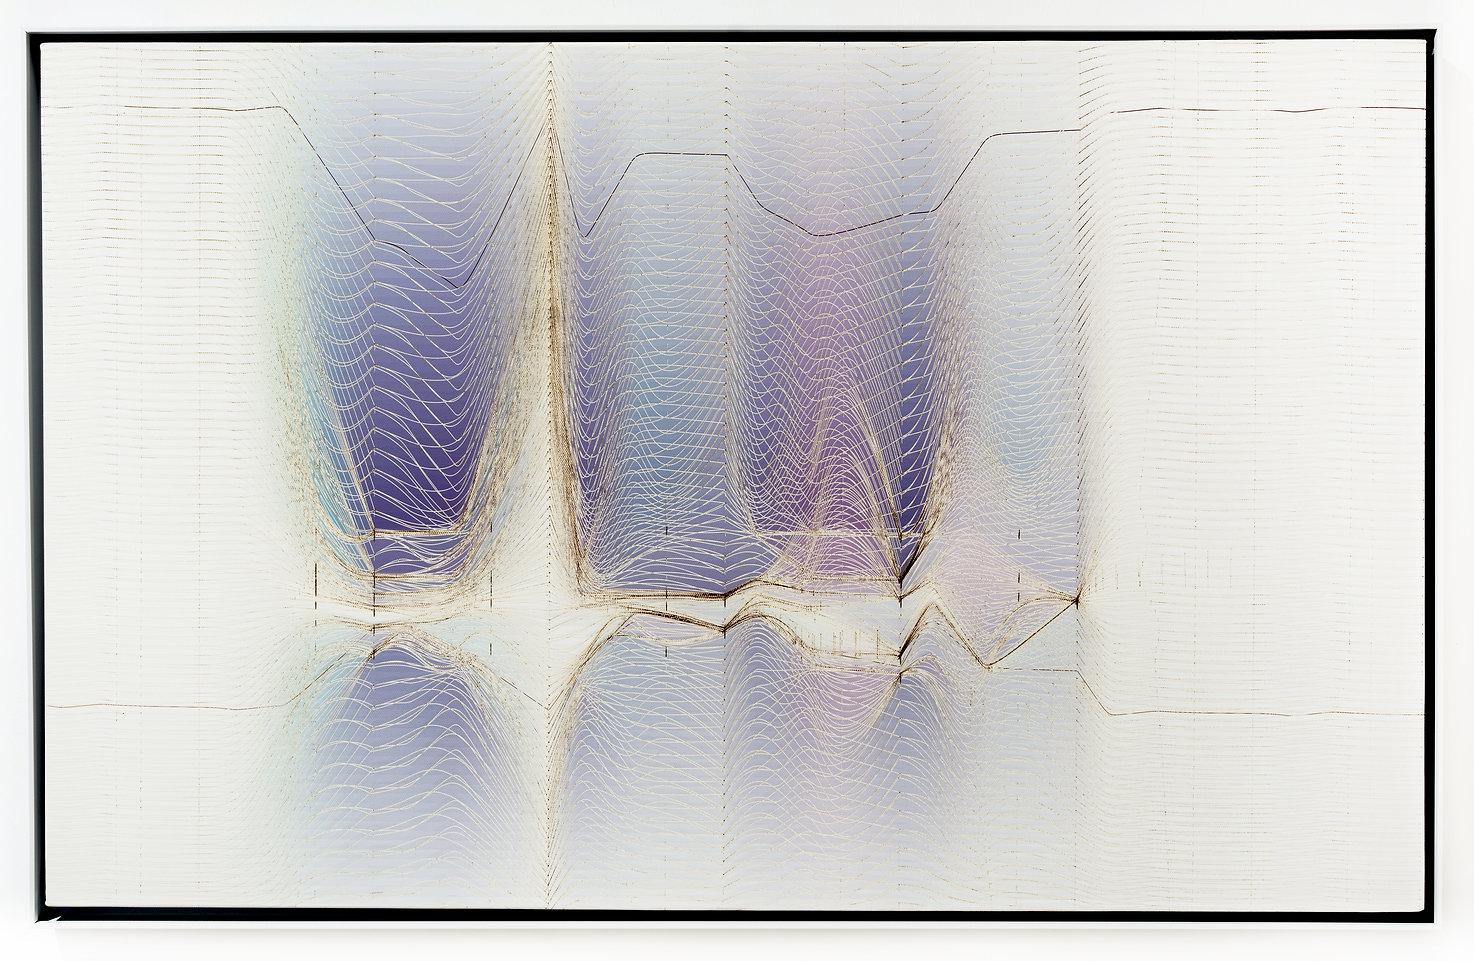 """<img src=""""31_Beet LQ 127 9_54x86_Perez Reiter_full"""" alt=""""burnt lines on a colorful canvas inspired by beethoven"""">"""